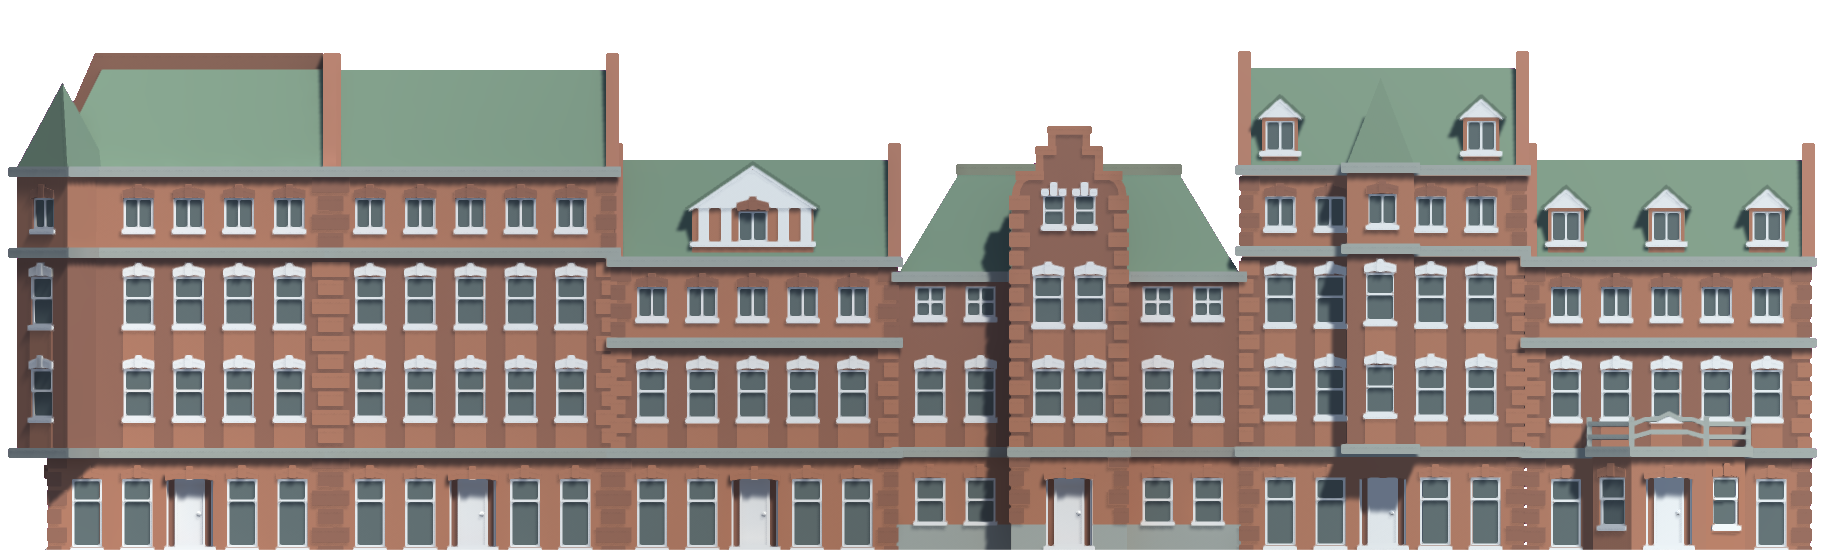 Low Poly Brick Houses